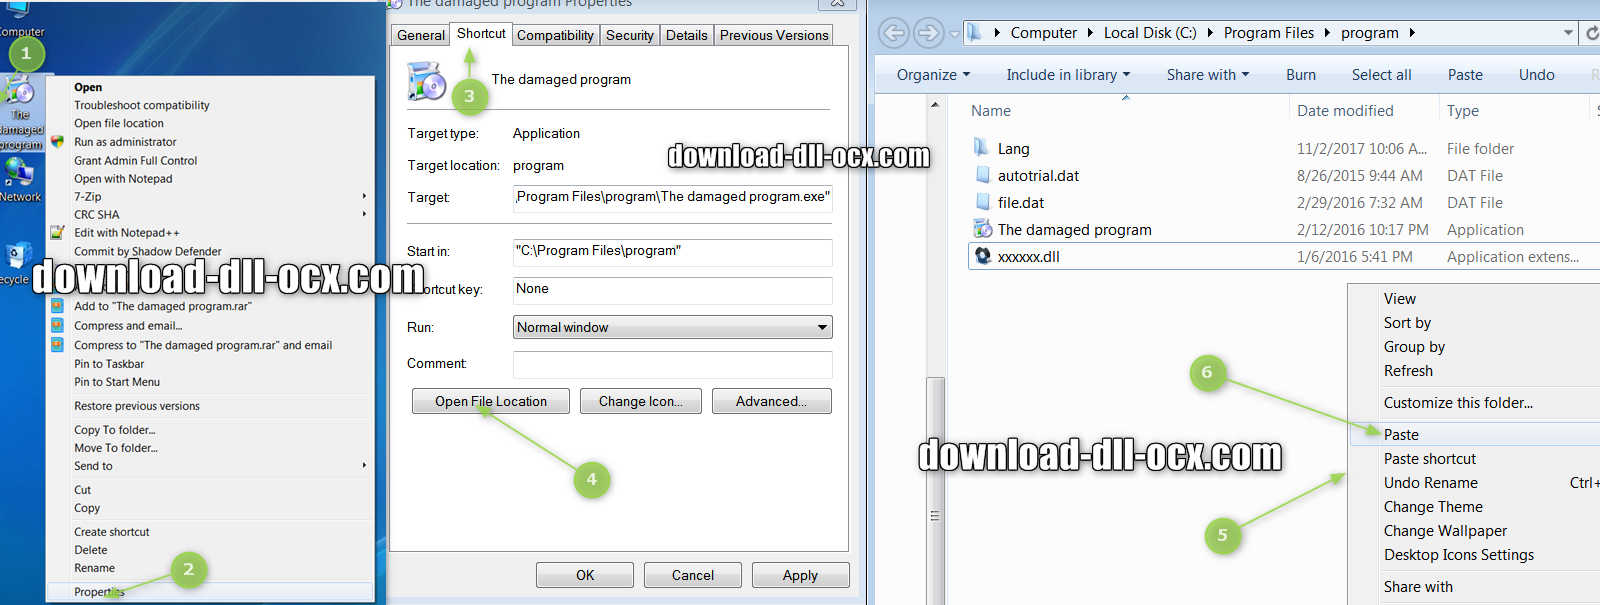 how to install Comphelp3MSC.dll file? for fix missing